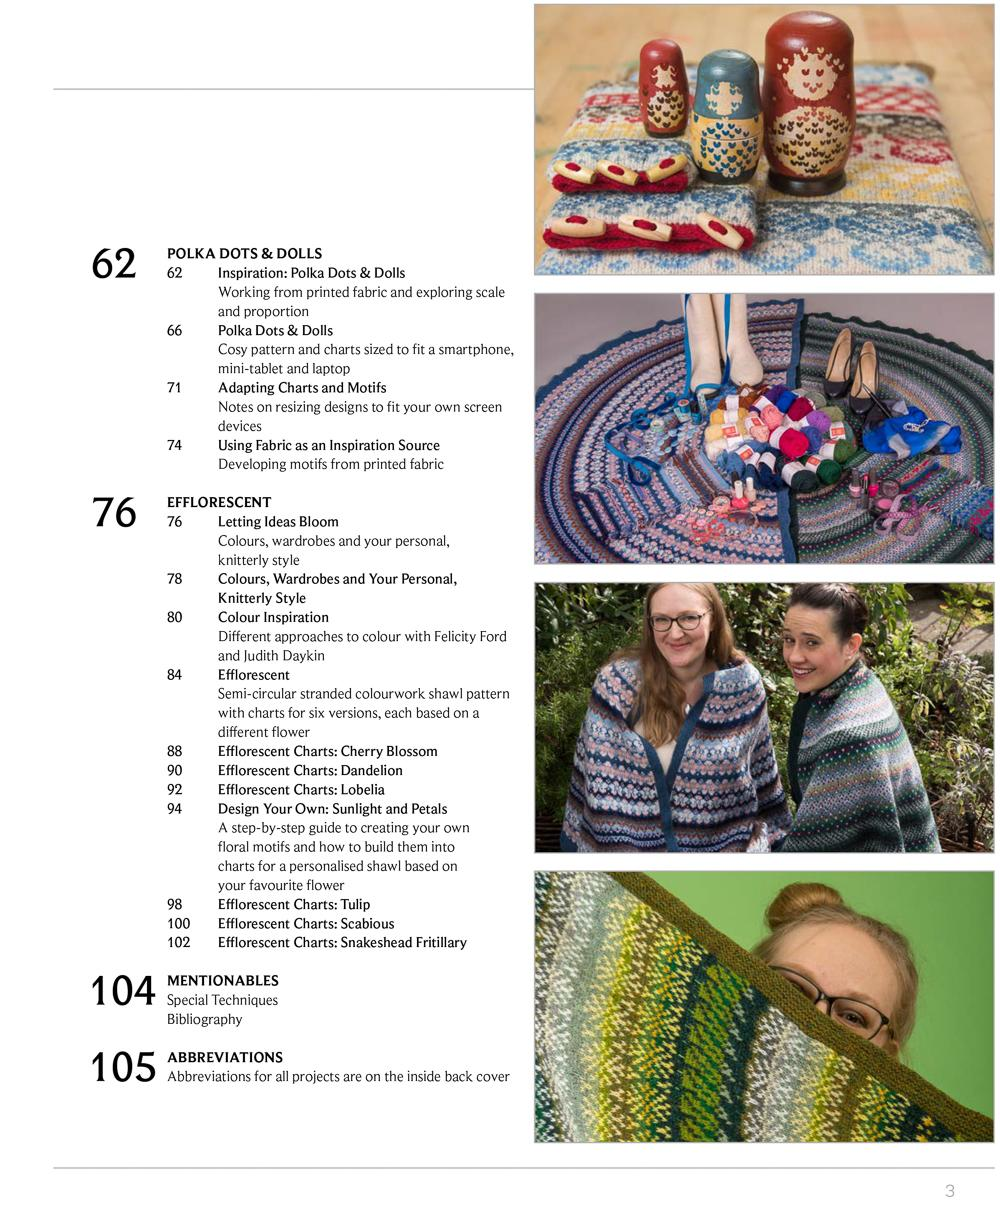 KNITSONIK Stranded Colourwork Playbook contents page